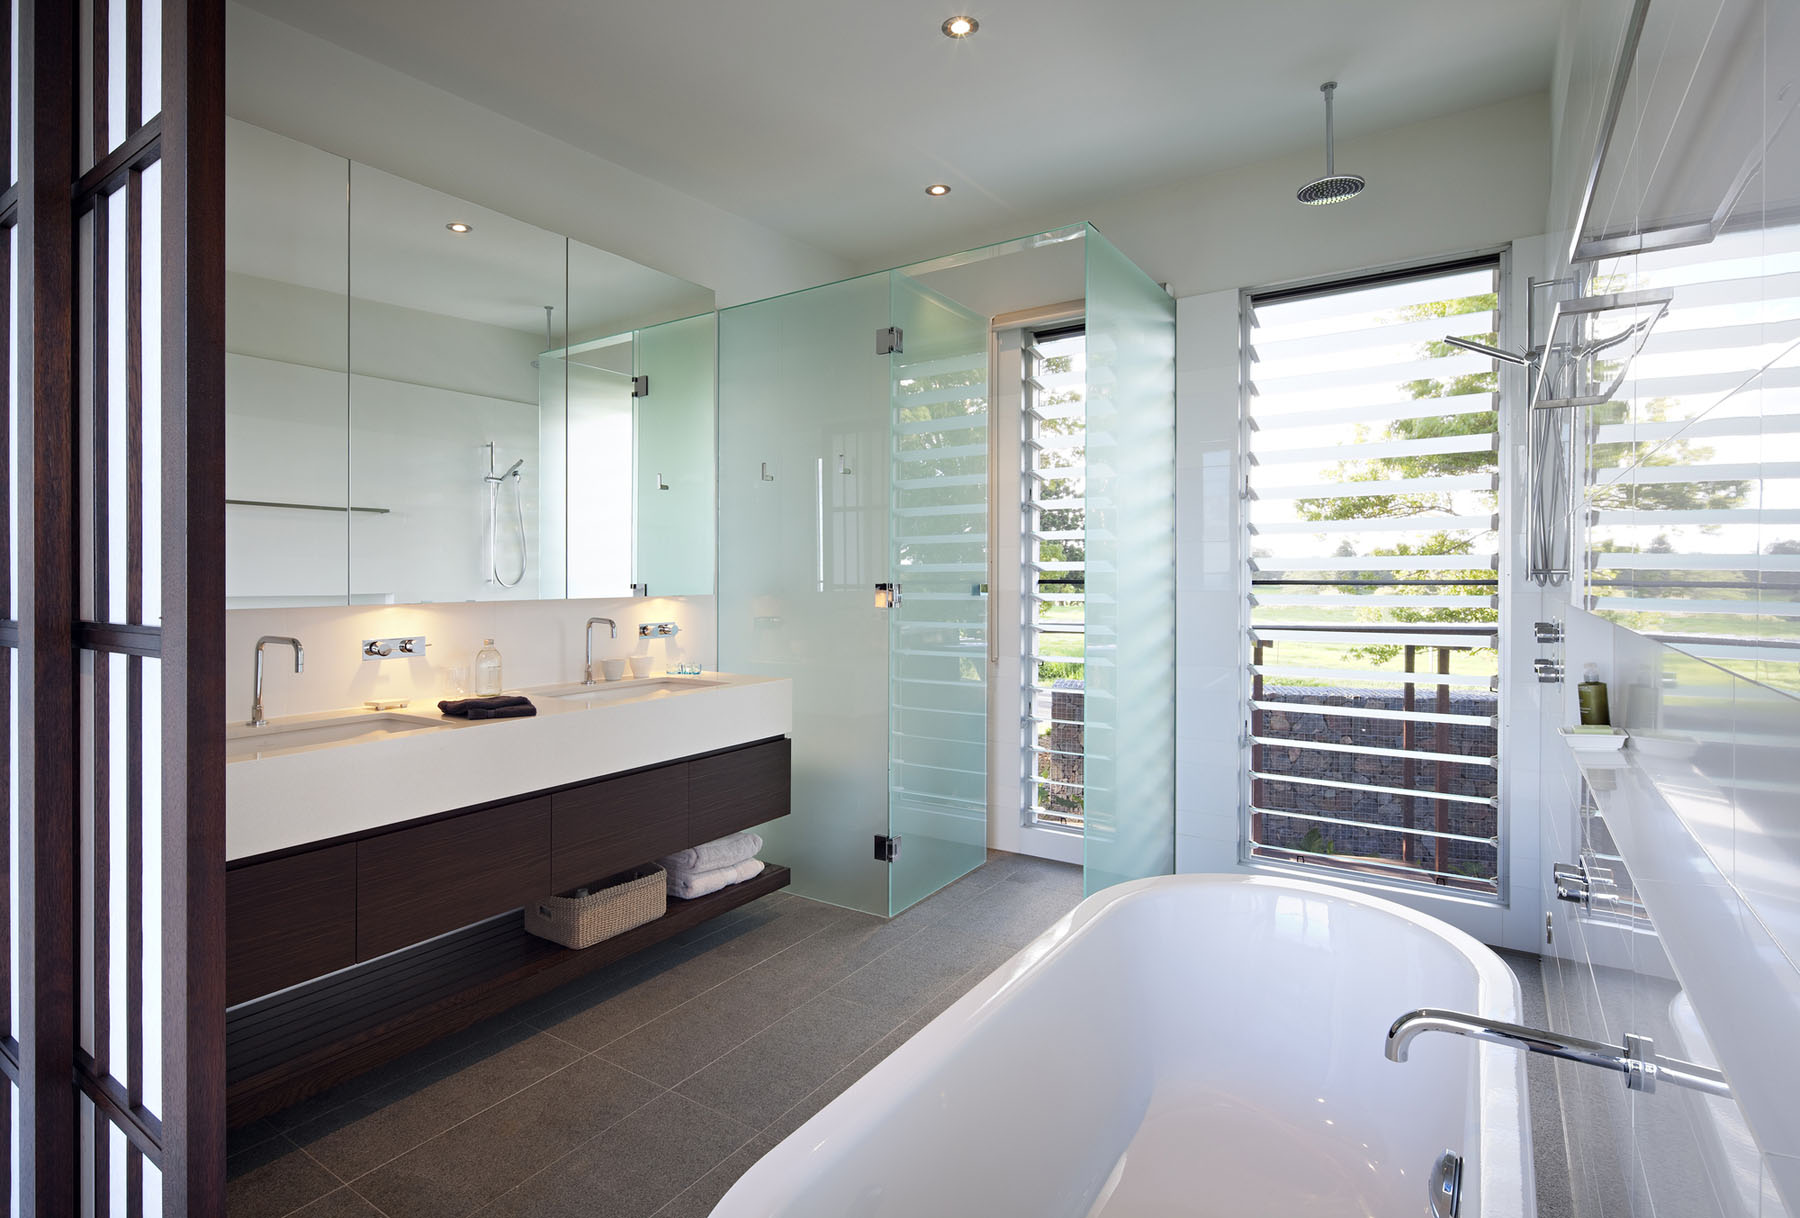 Badezimmer Minimalisti Luxury Modern Residence With Breathtaking Views Of Glass